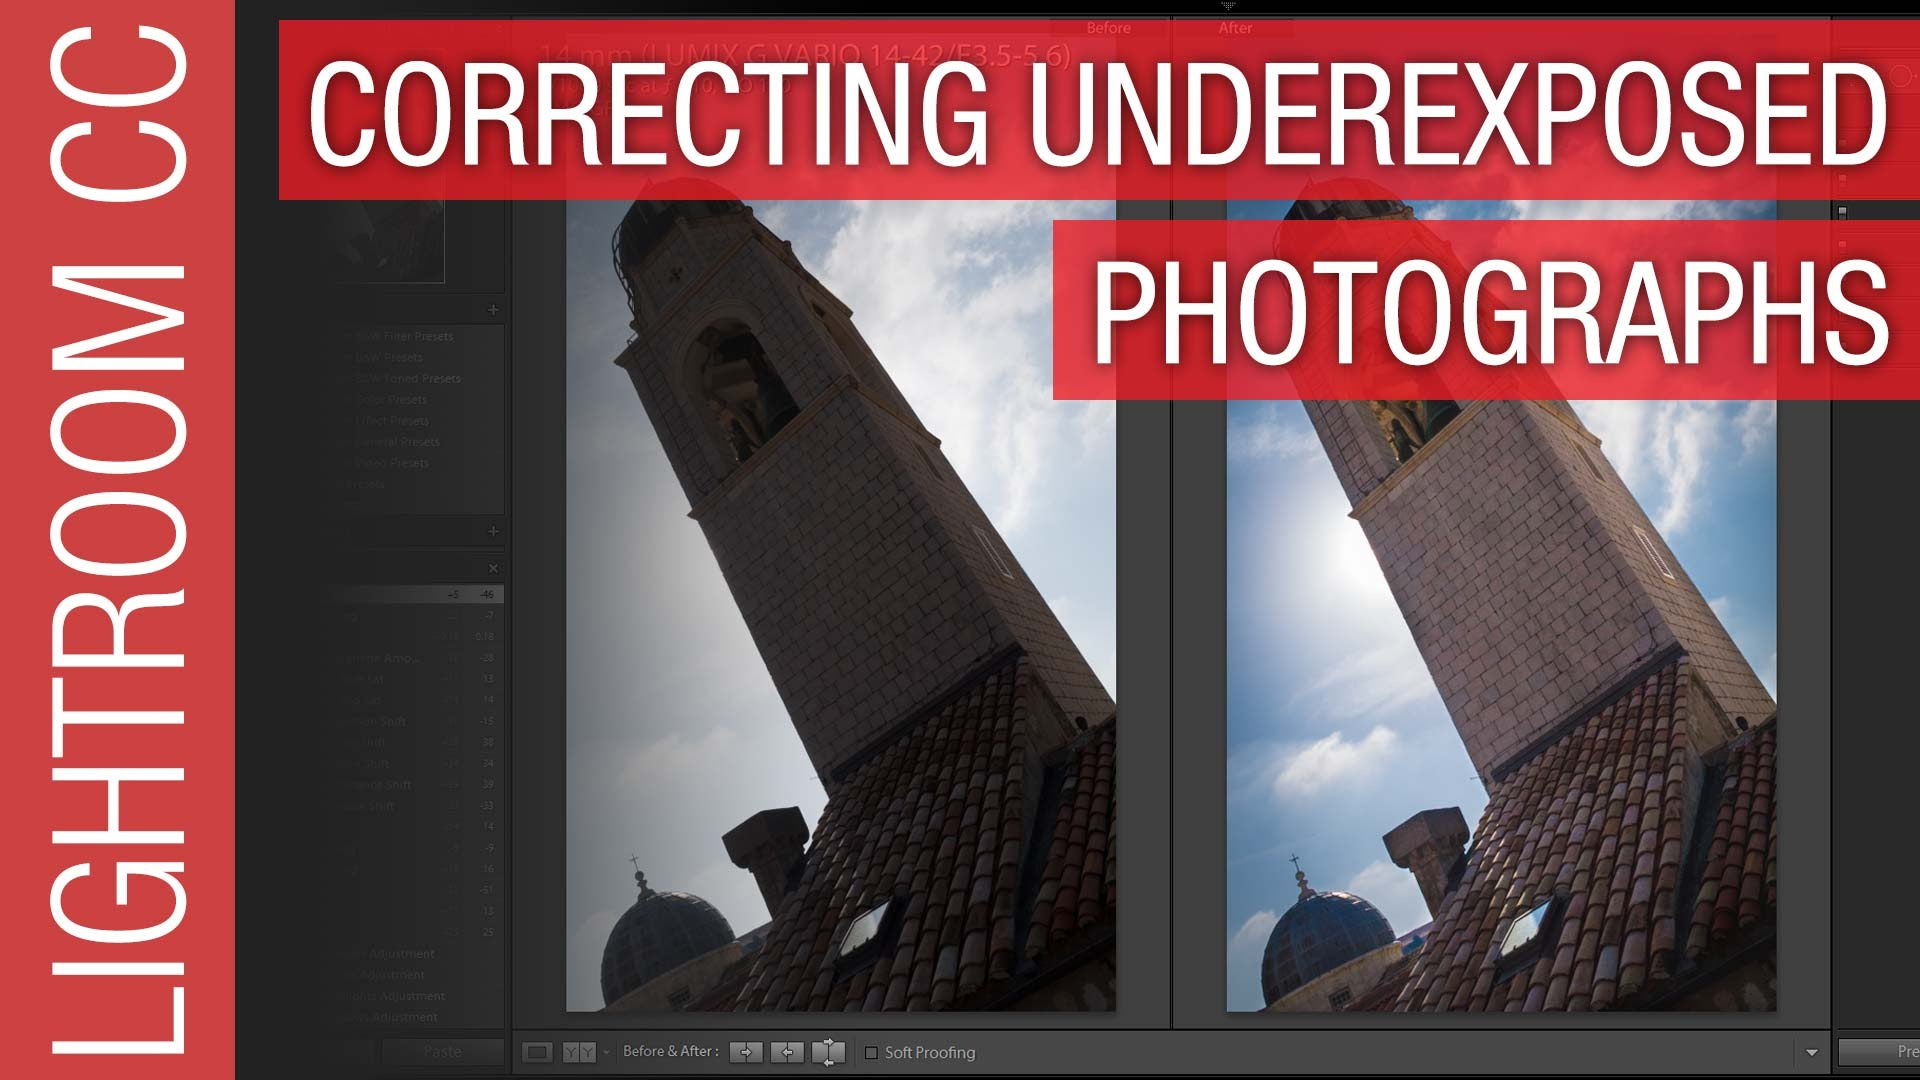 How To Correct Underexposed Photographs in Adobe Lightroom CC